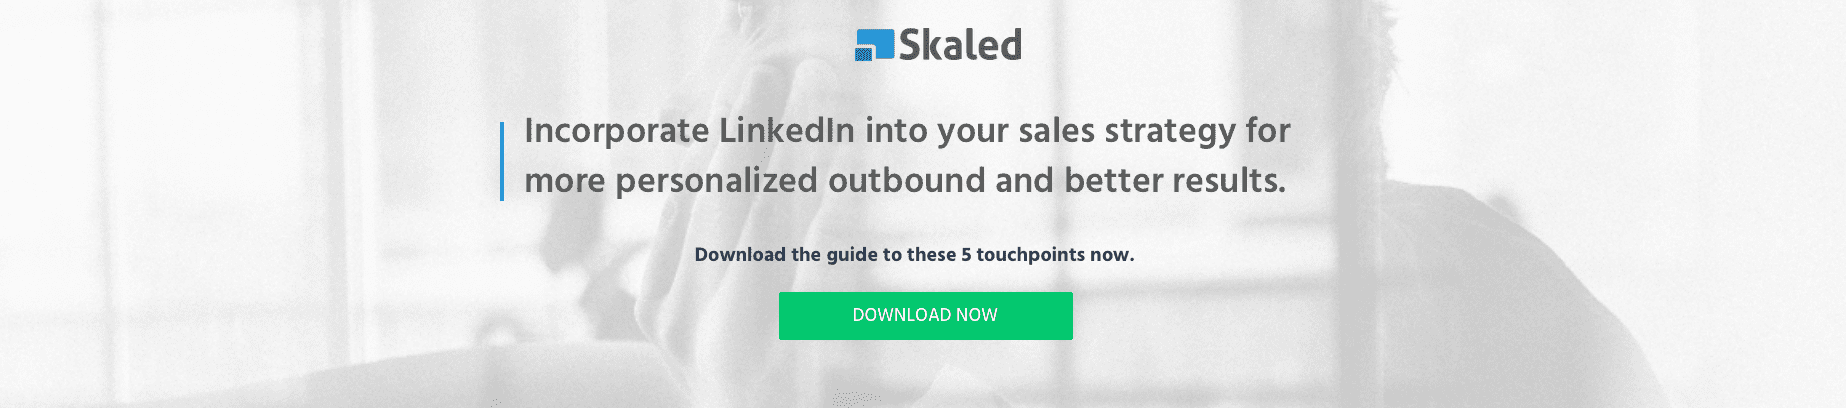 Using LinkedIn as an Additional Touchpoint X5